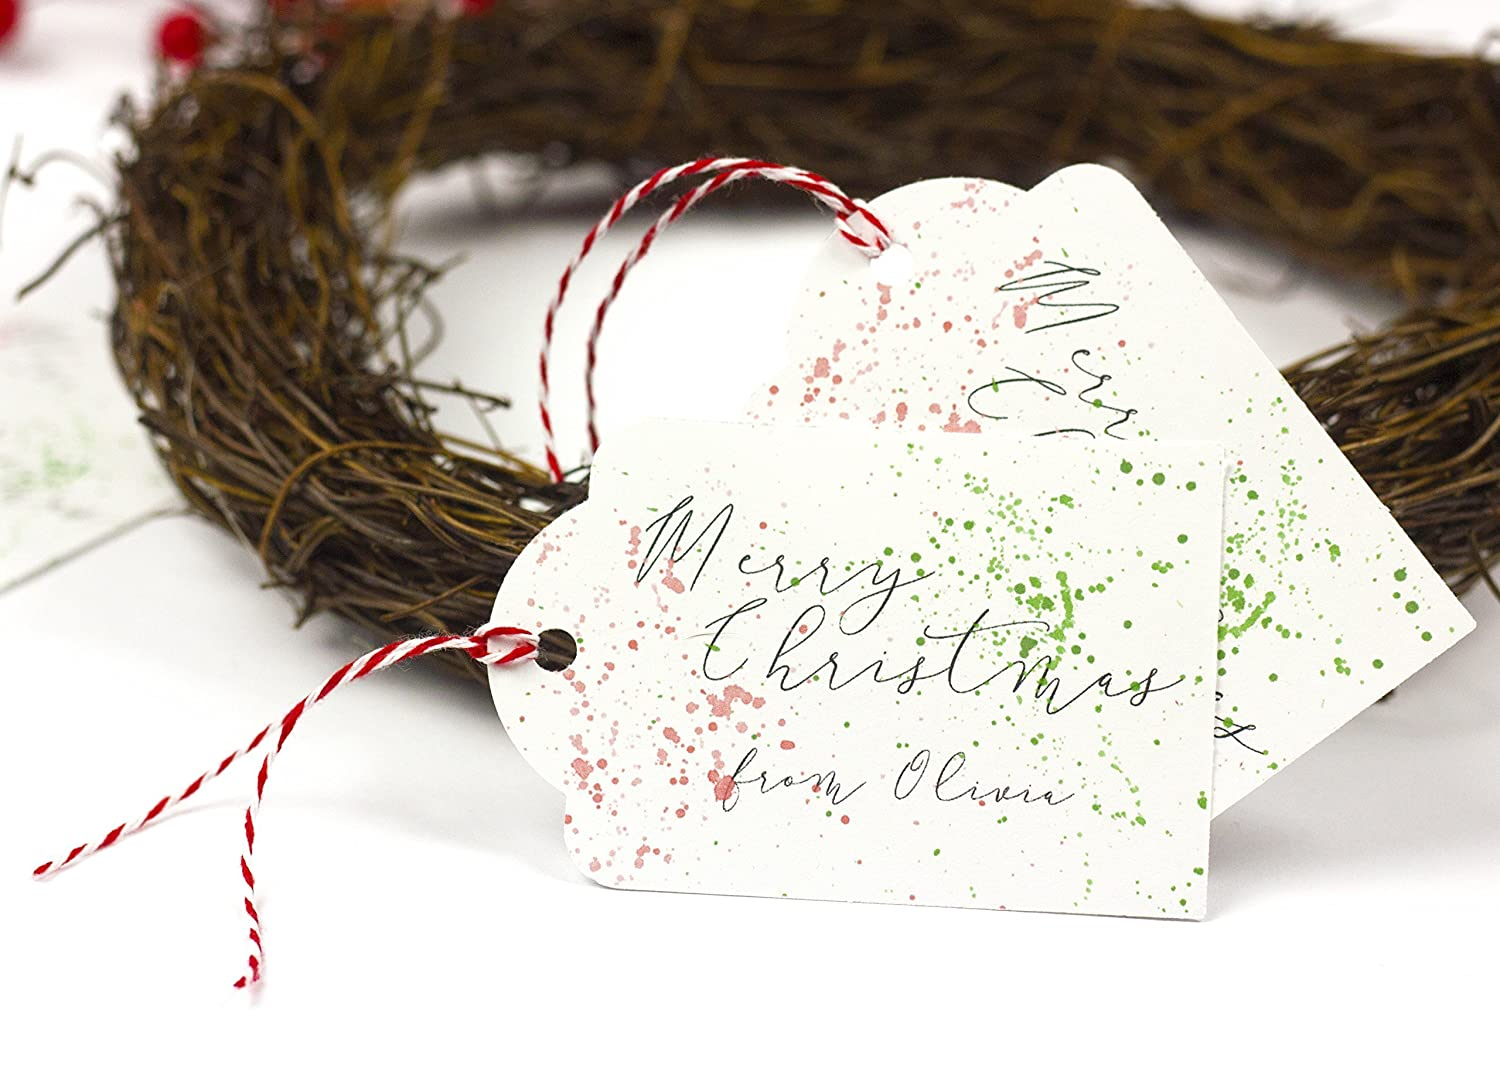 Personalized Christmas Gifts.Personalized Christmas Tags With String Personalized Christmas Gift Tags Personalized Holiday Gift Tags Red And Green Christmas Tags With Twine